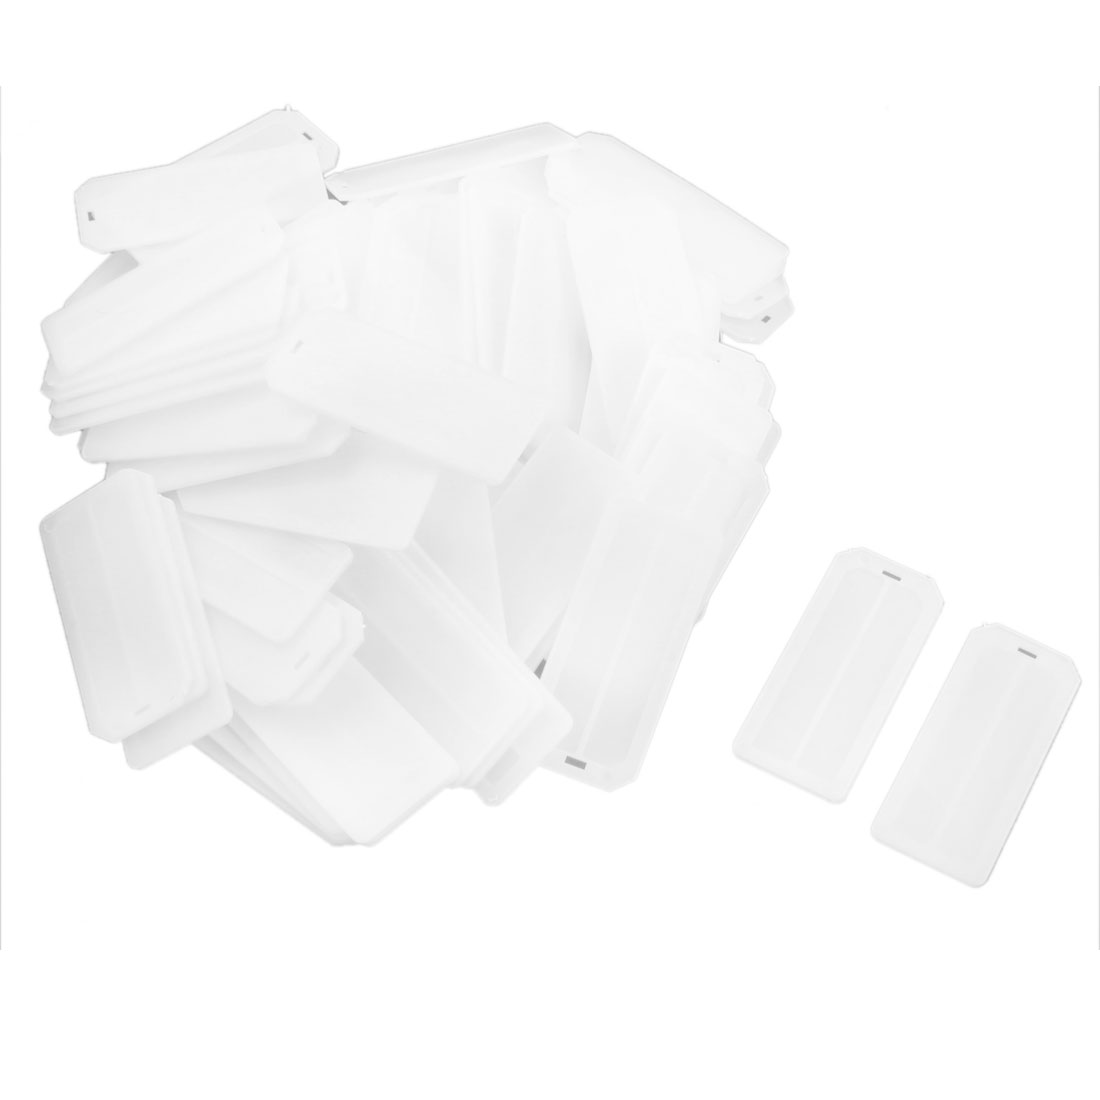 100pcs 72mm x 31mm Rectangle White Plastic Flexible Blank Wire Cable Marker Plate Swing Tag Hangtag Label Identifier